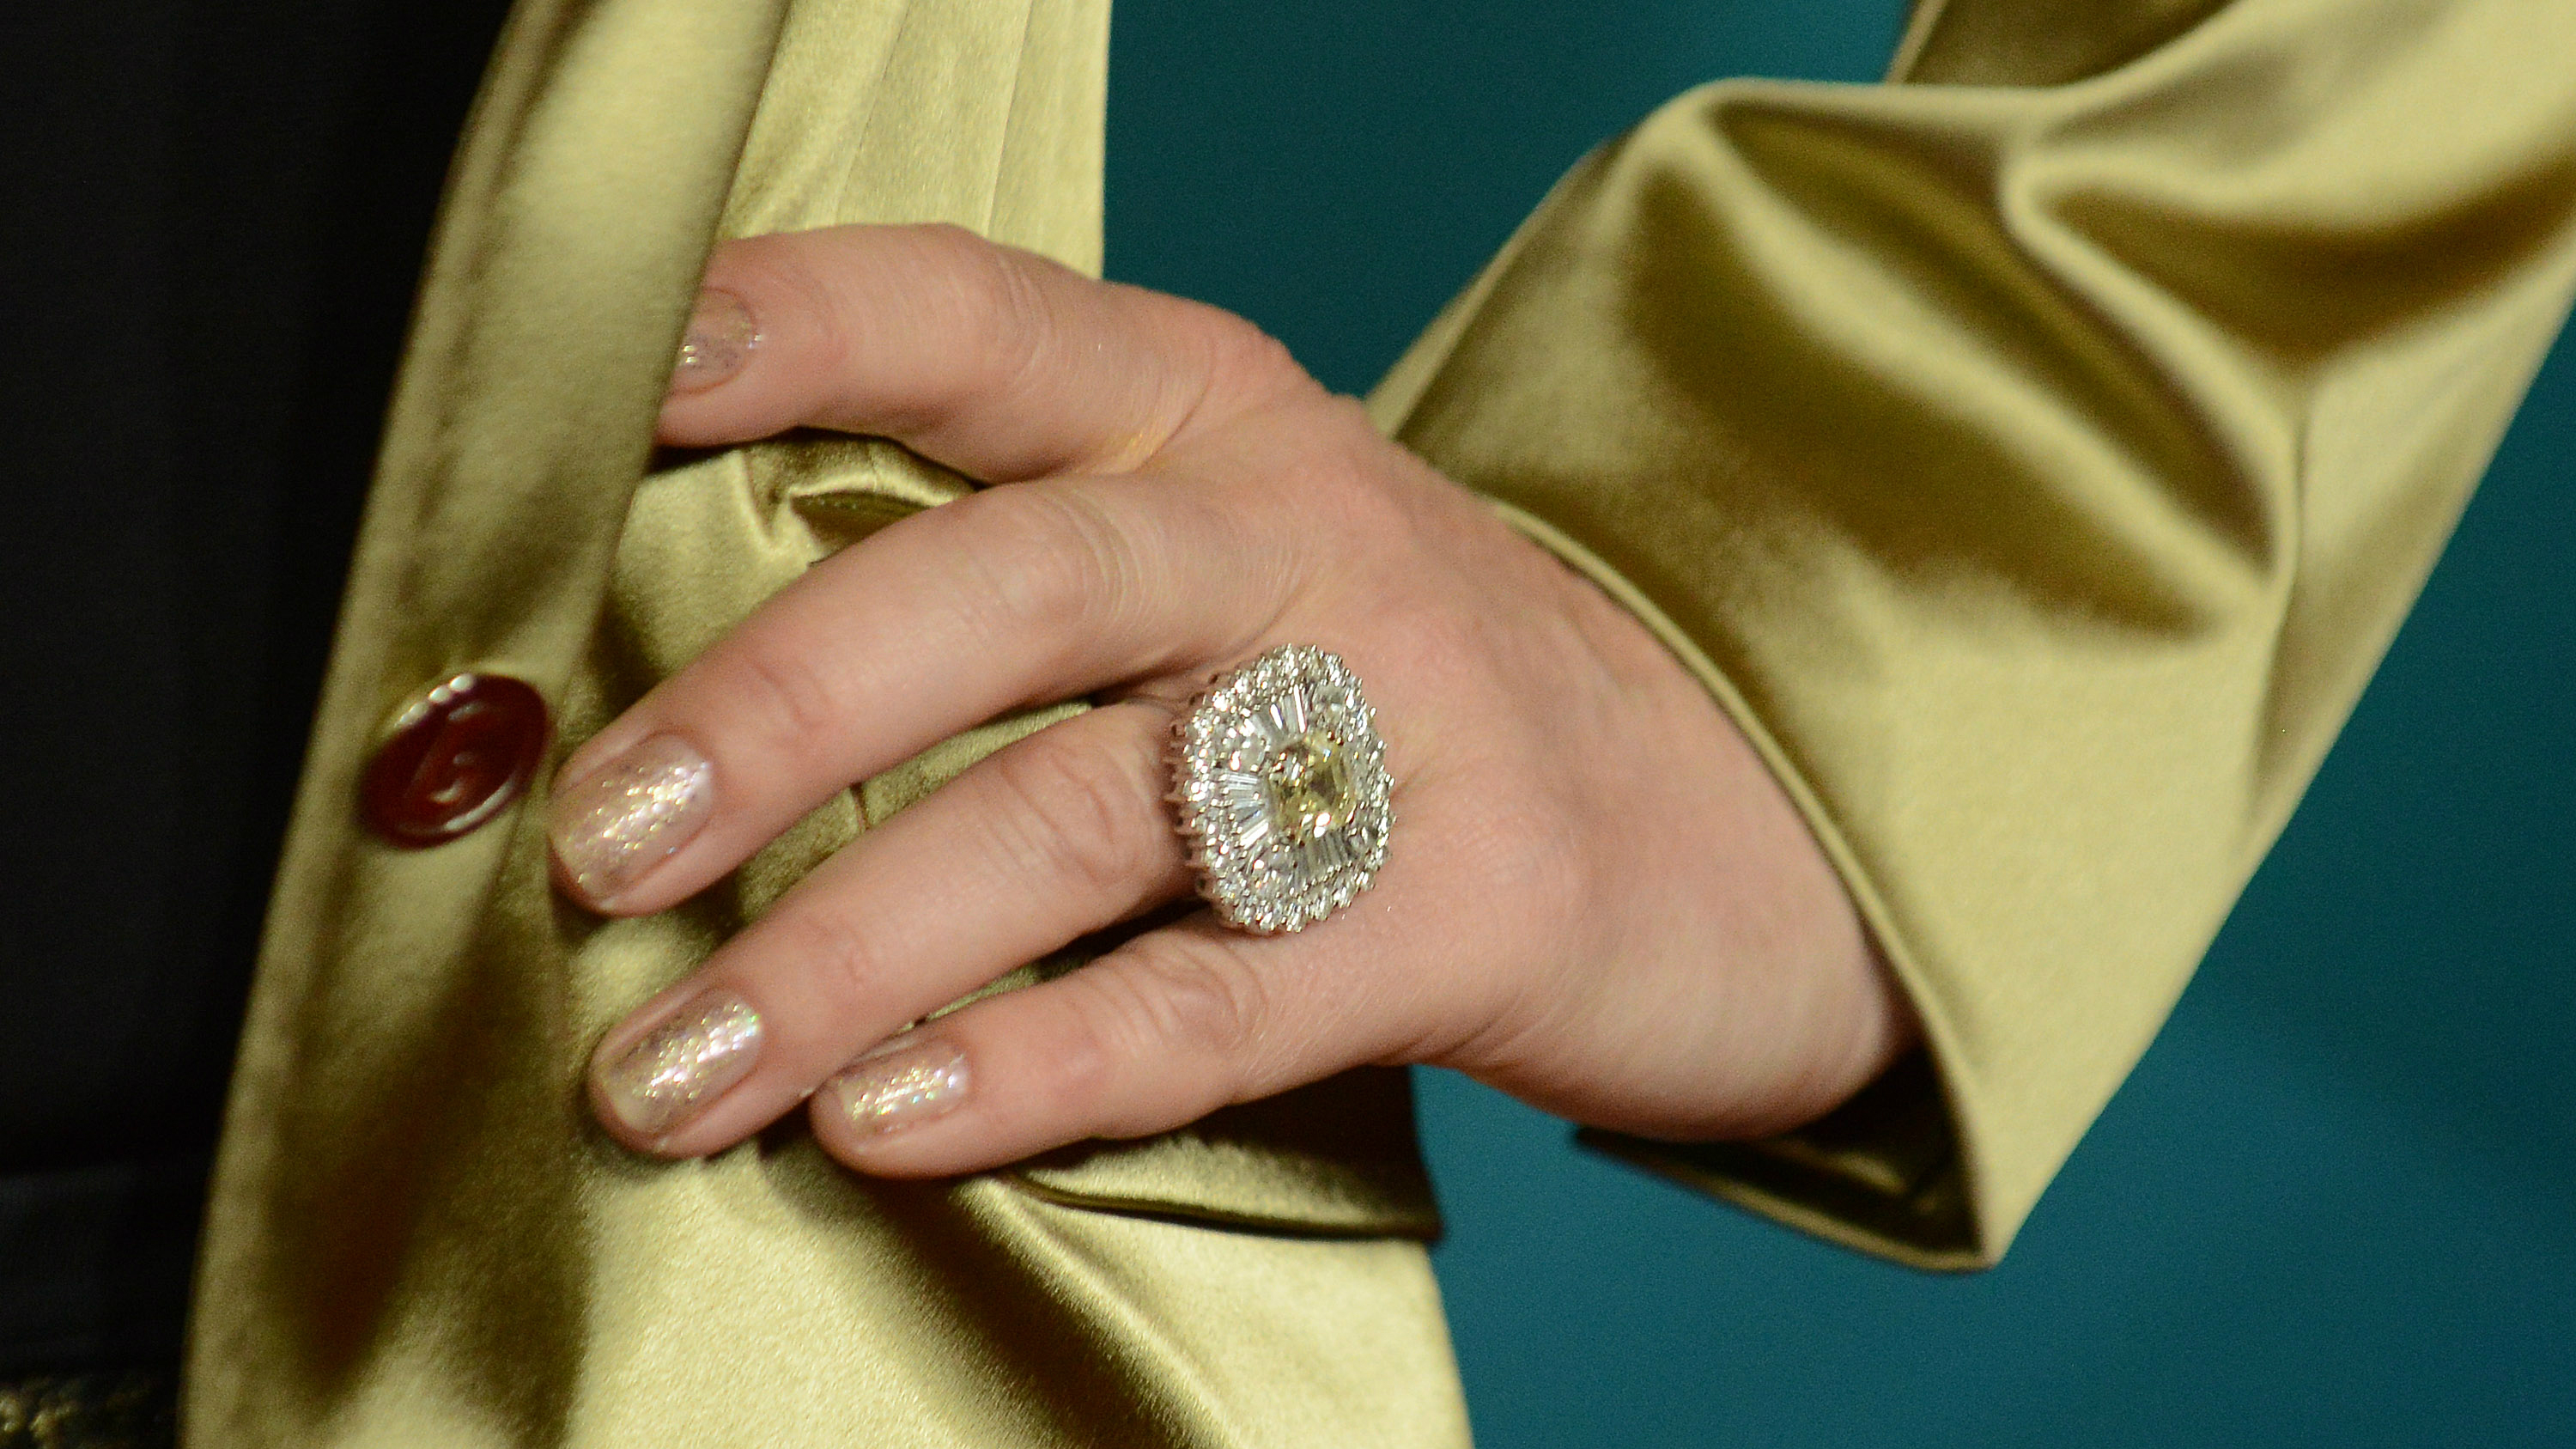 A woman wearing a gold ring.